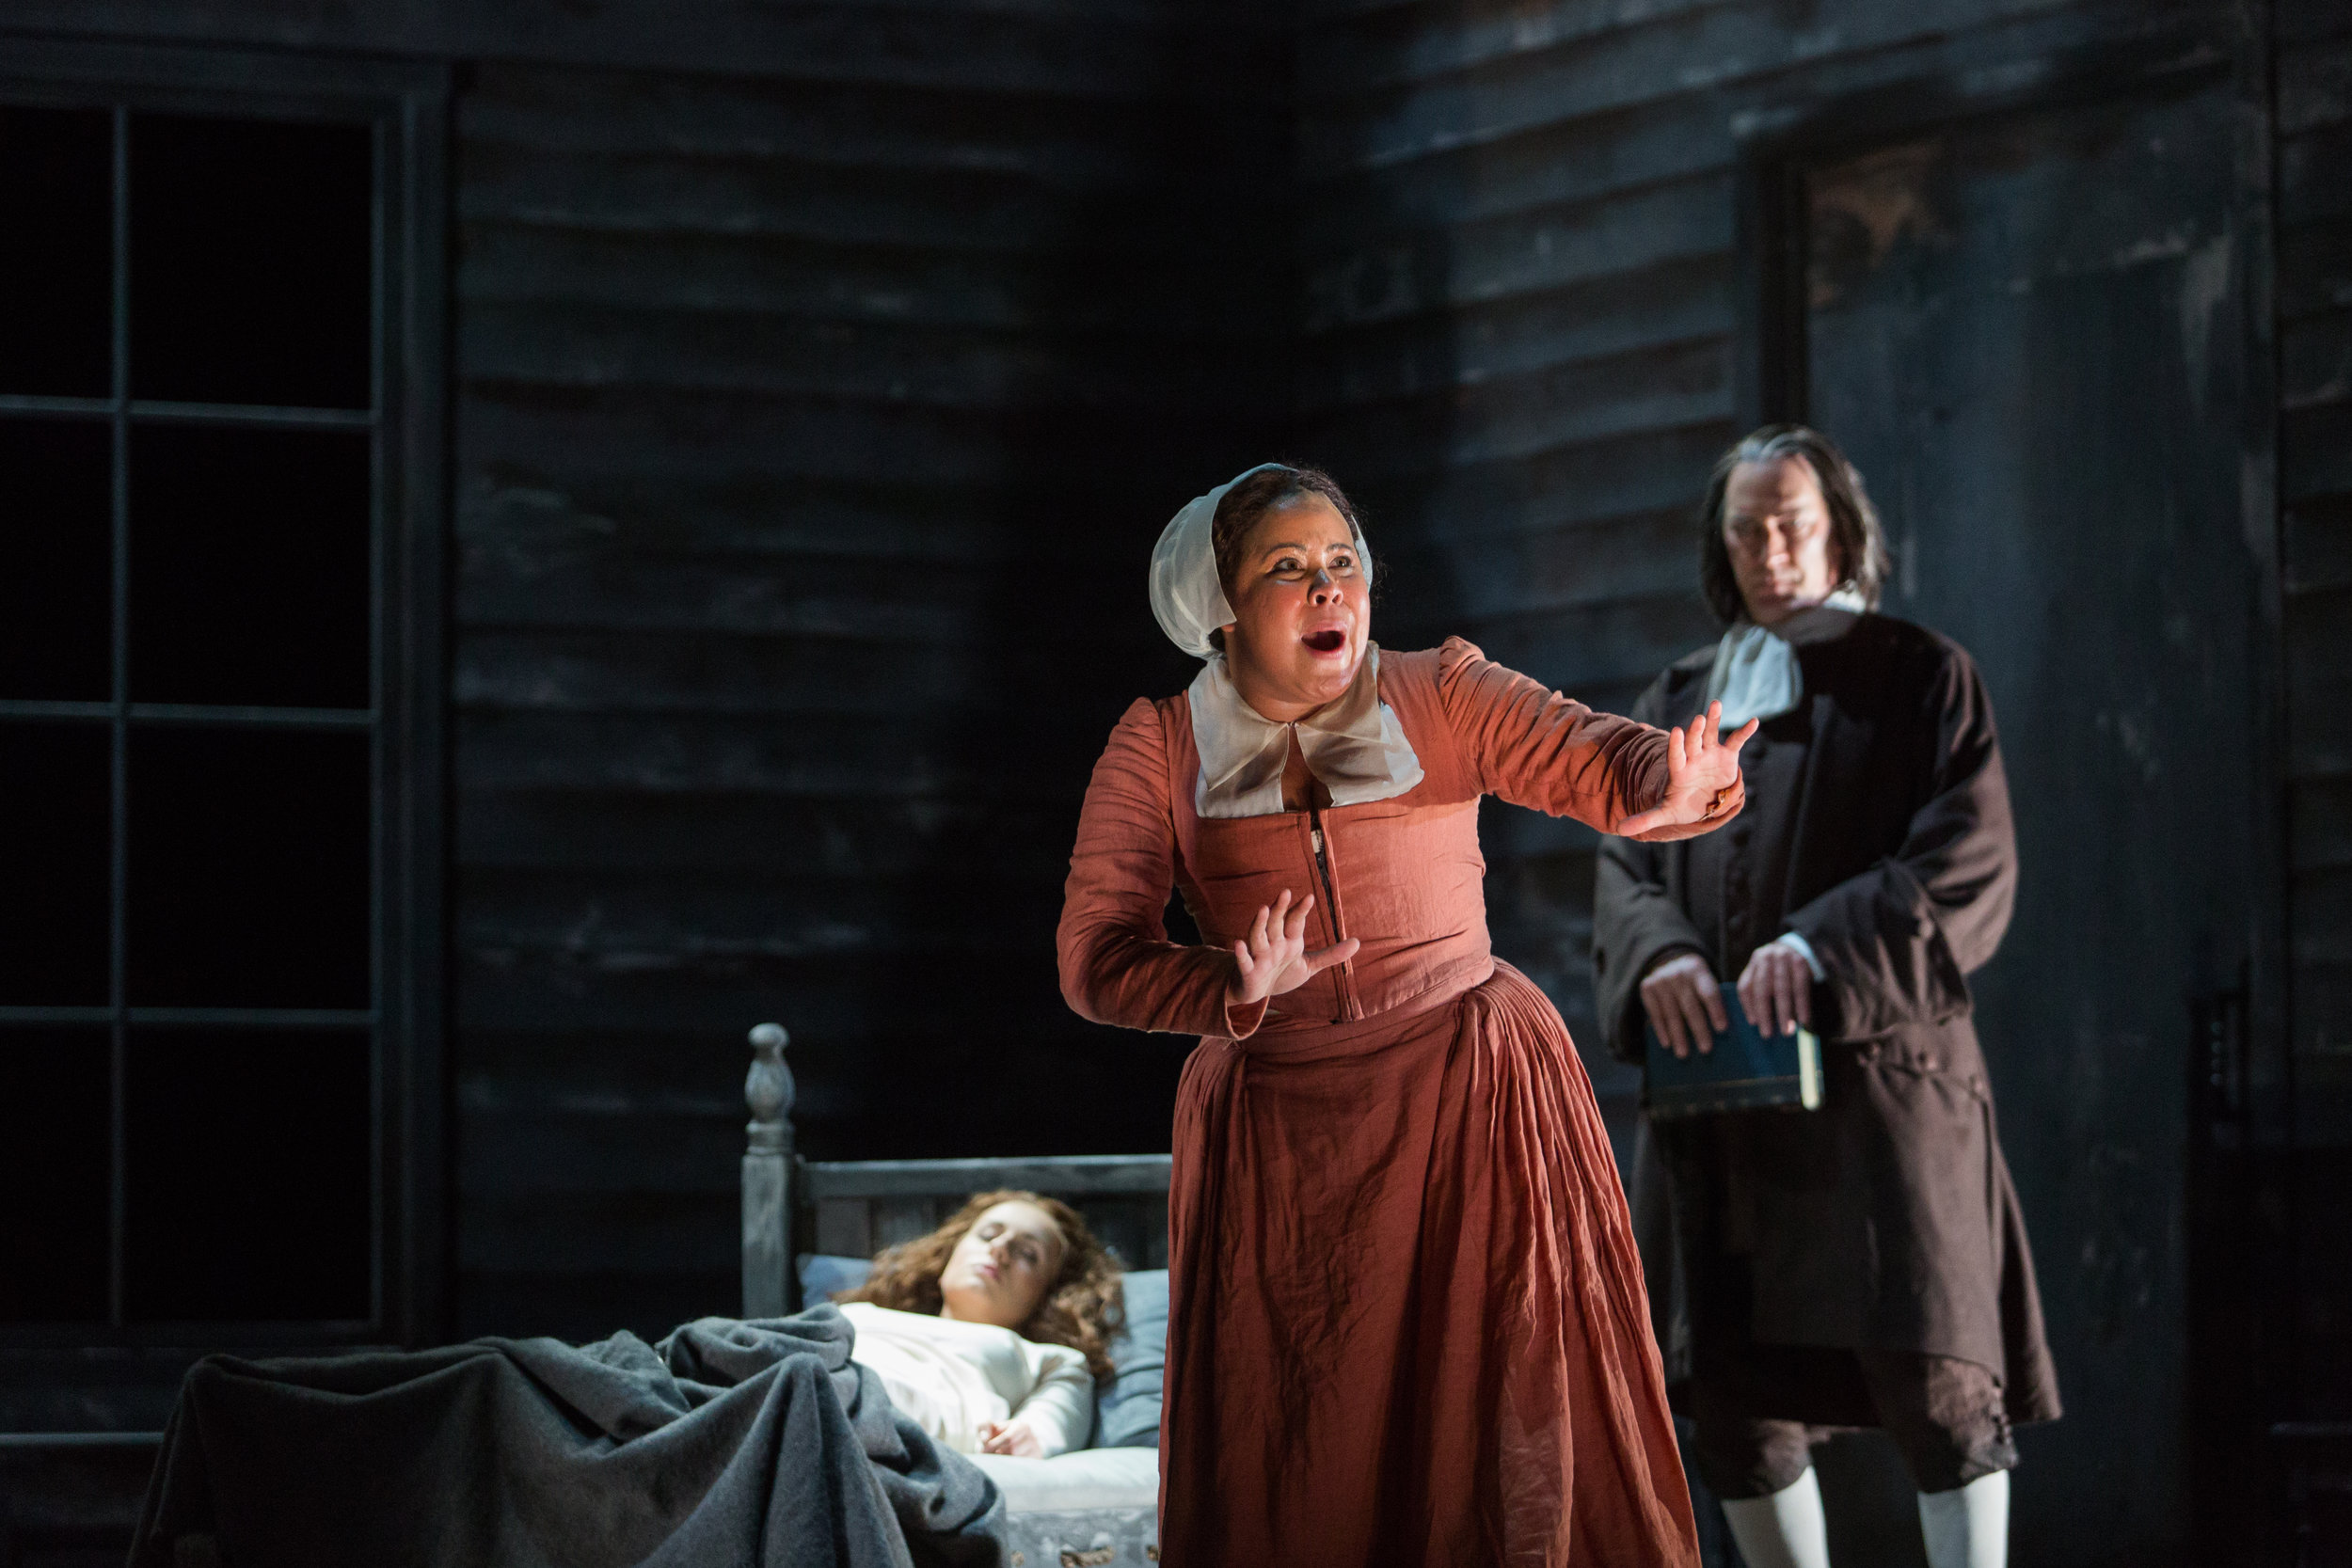 Ariana Wehr as Abigail Williams in The Glimmerglass Festival's 2016 production of The Crucible with David Pittsinger as Rev. Hale and Mary Beth Nelson as Betty Parris. Photo Credit: Karli Cadel